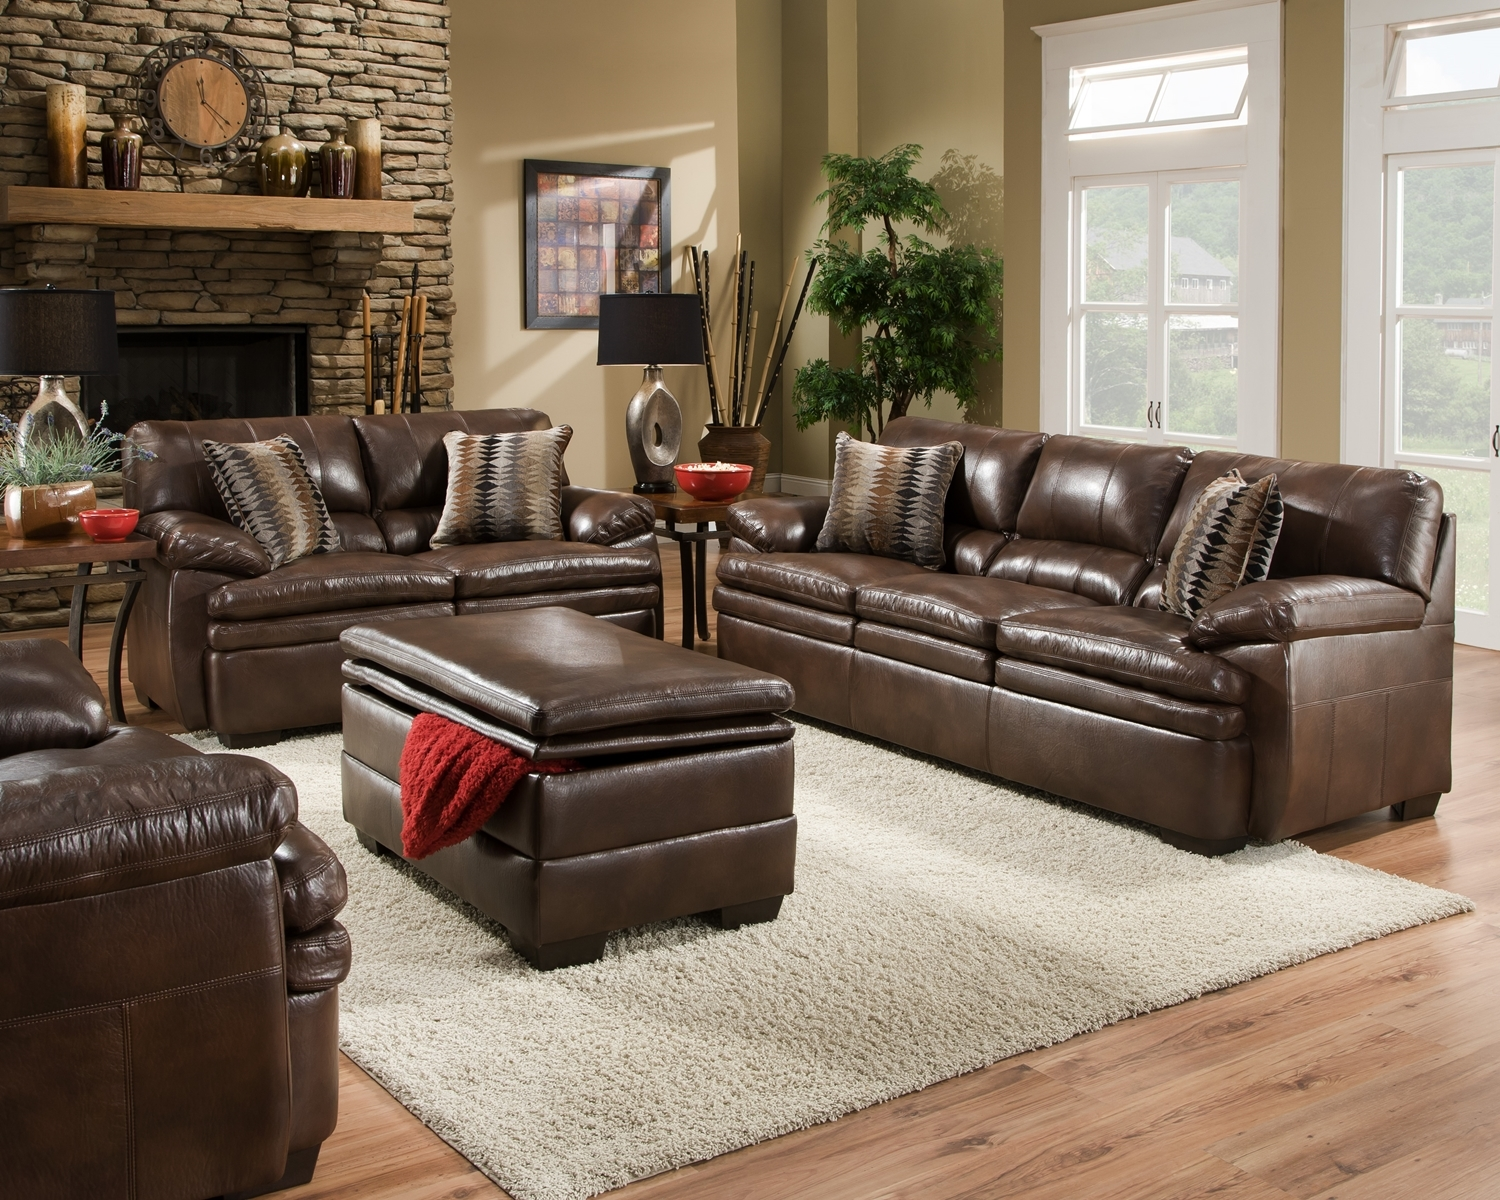 brown bonded leather sofa set casual living room furniture w accent pillows. Black Bedroom Furniture Sets. Home Design Ideas